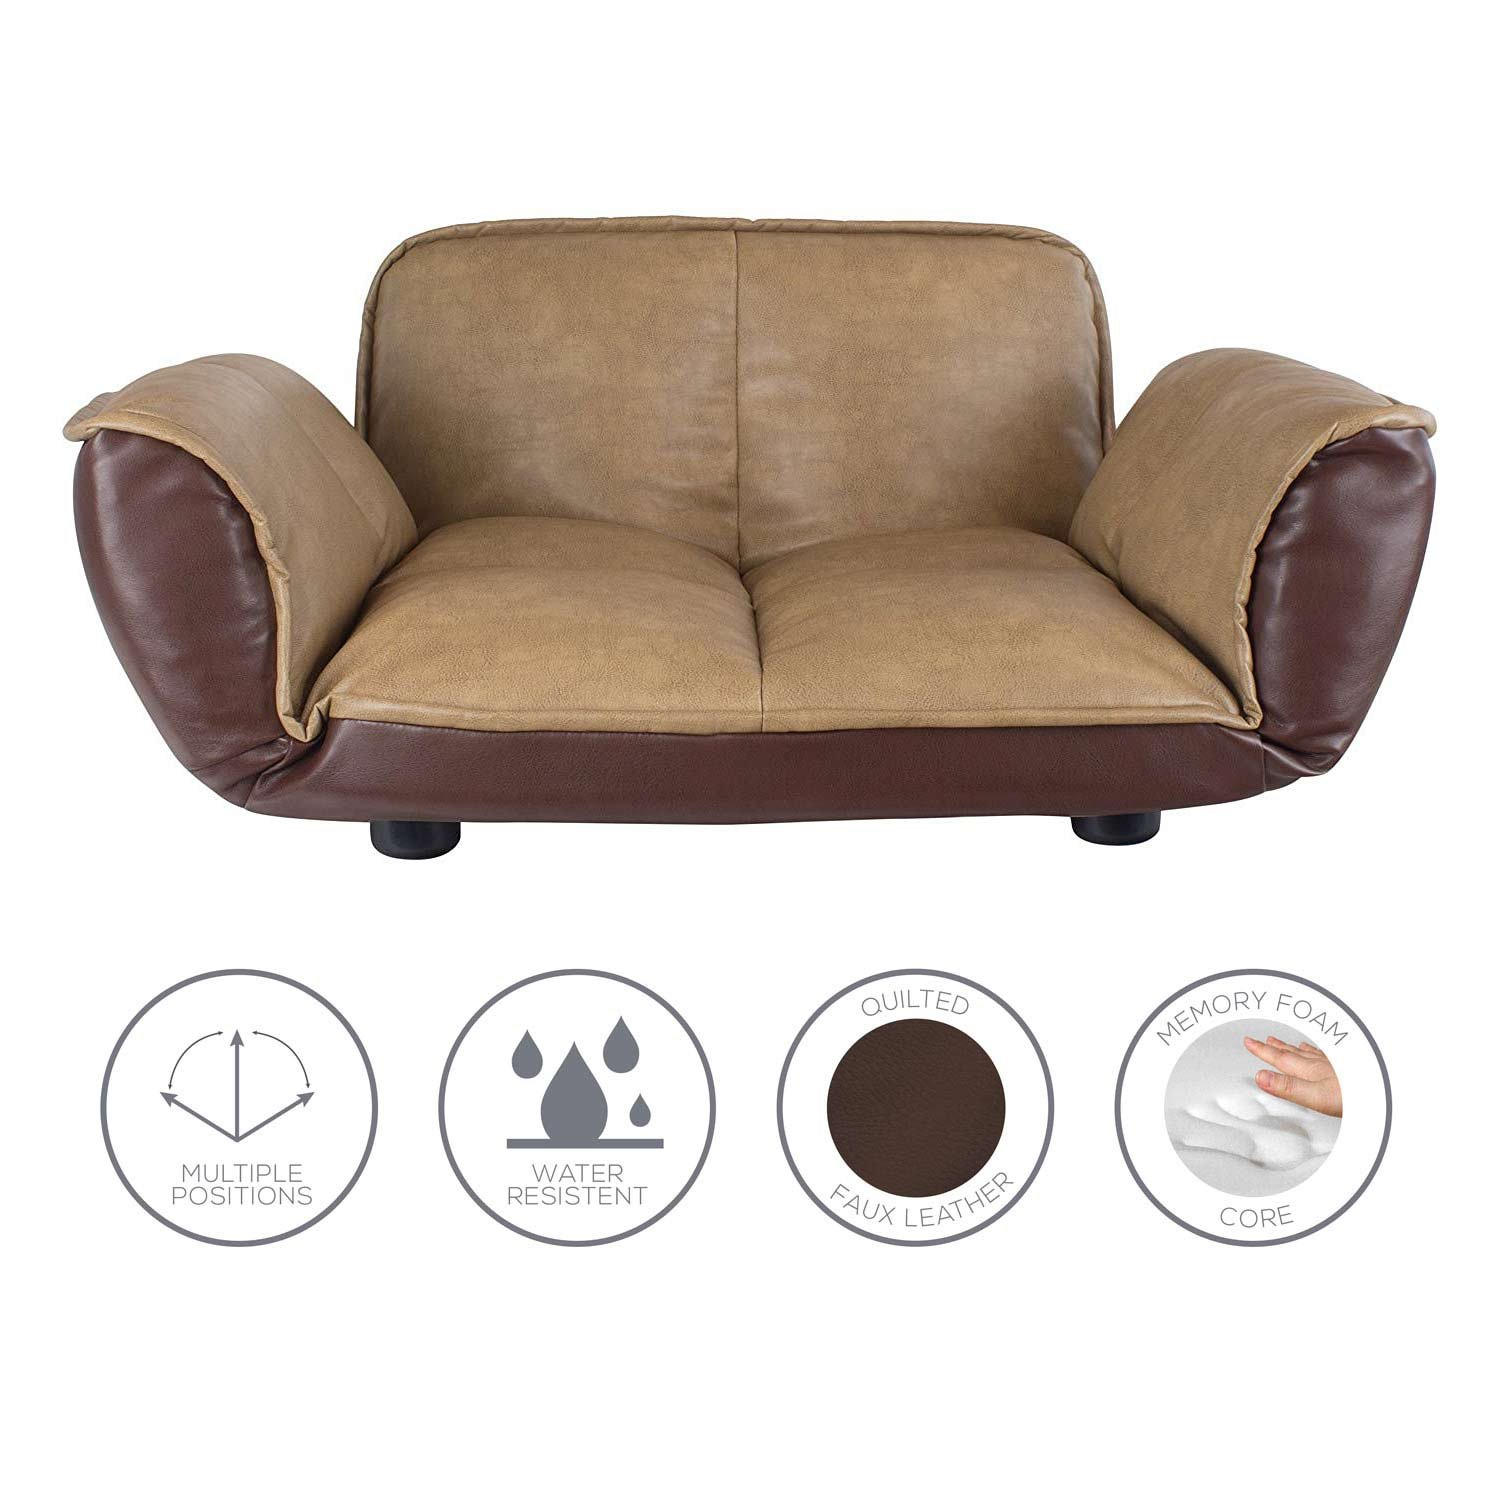 Dog Couch / Leather Dog Bed / Reclining Pet Sofa With Stylish Water Resistant Faux Leather Finish 28 in x 24 in x 14 / Dog Bed / Sofa Beds for Dogs By Frontpet Lux